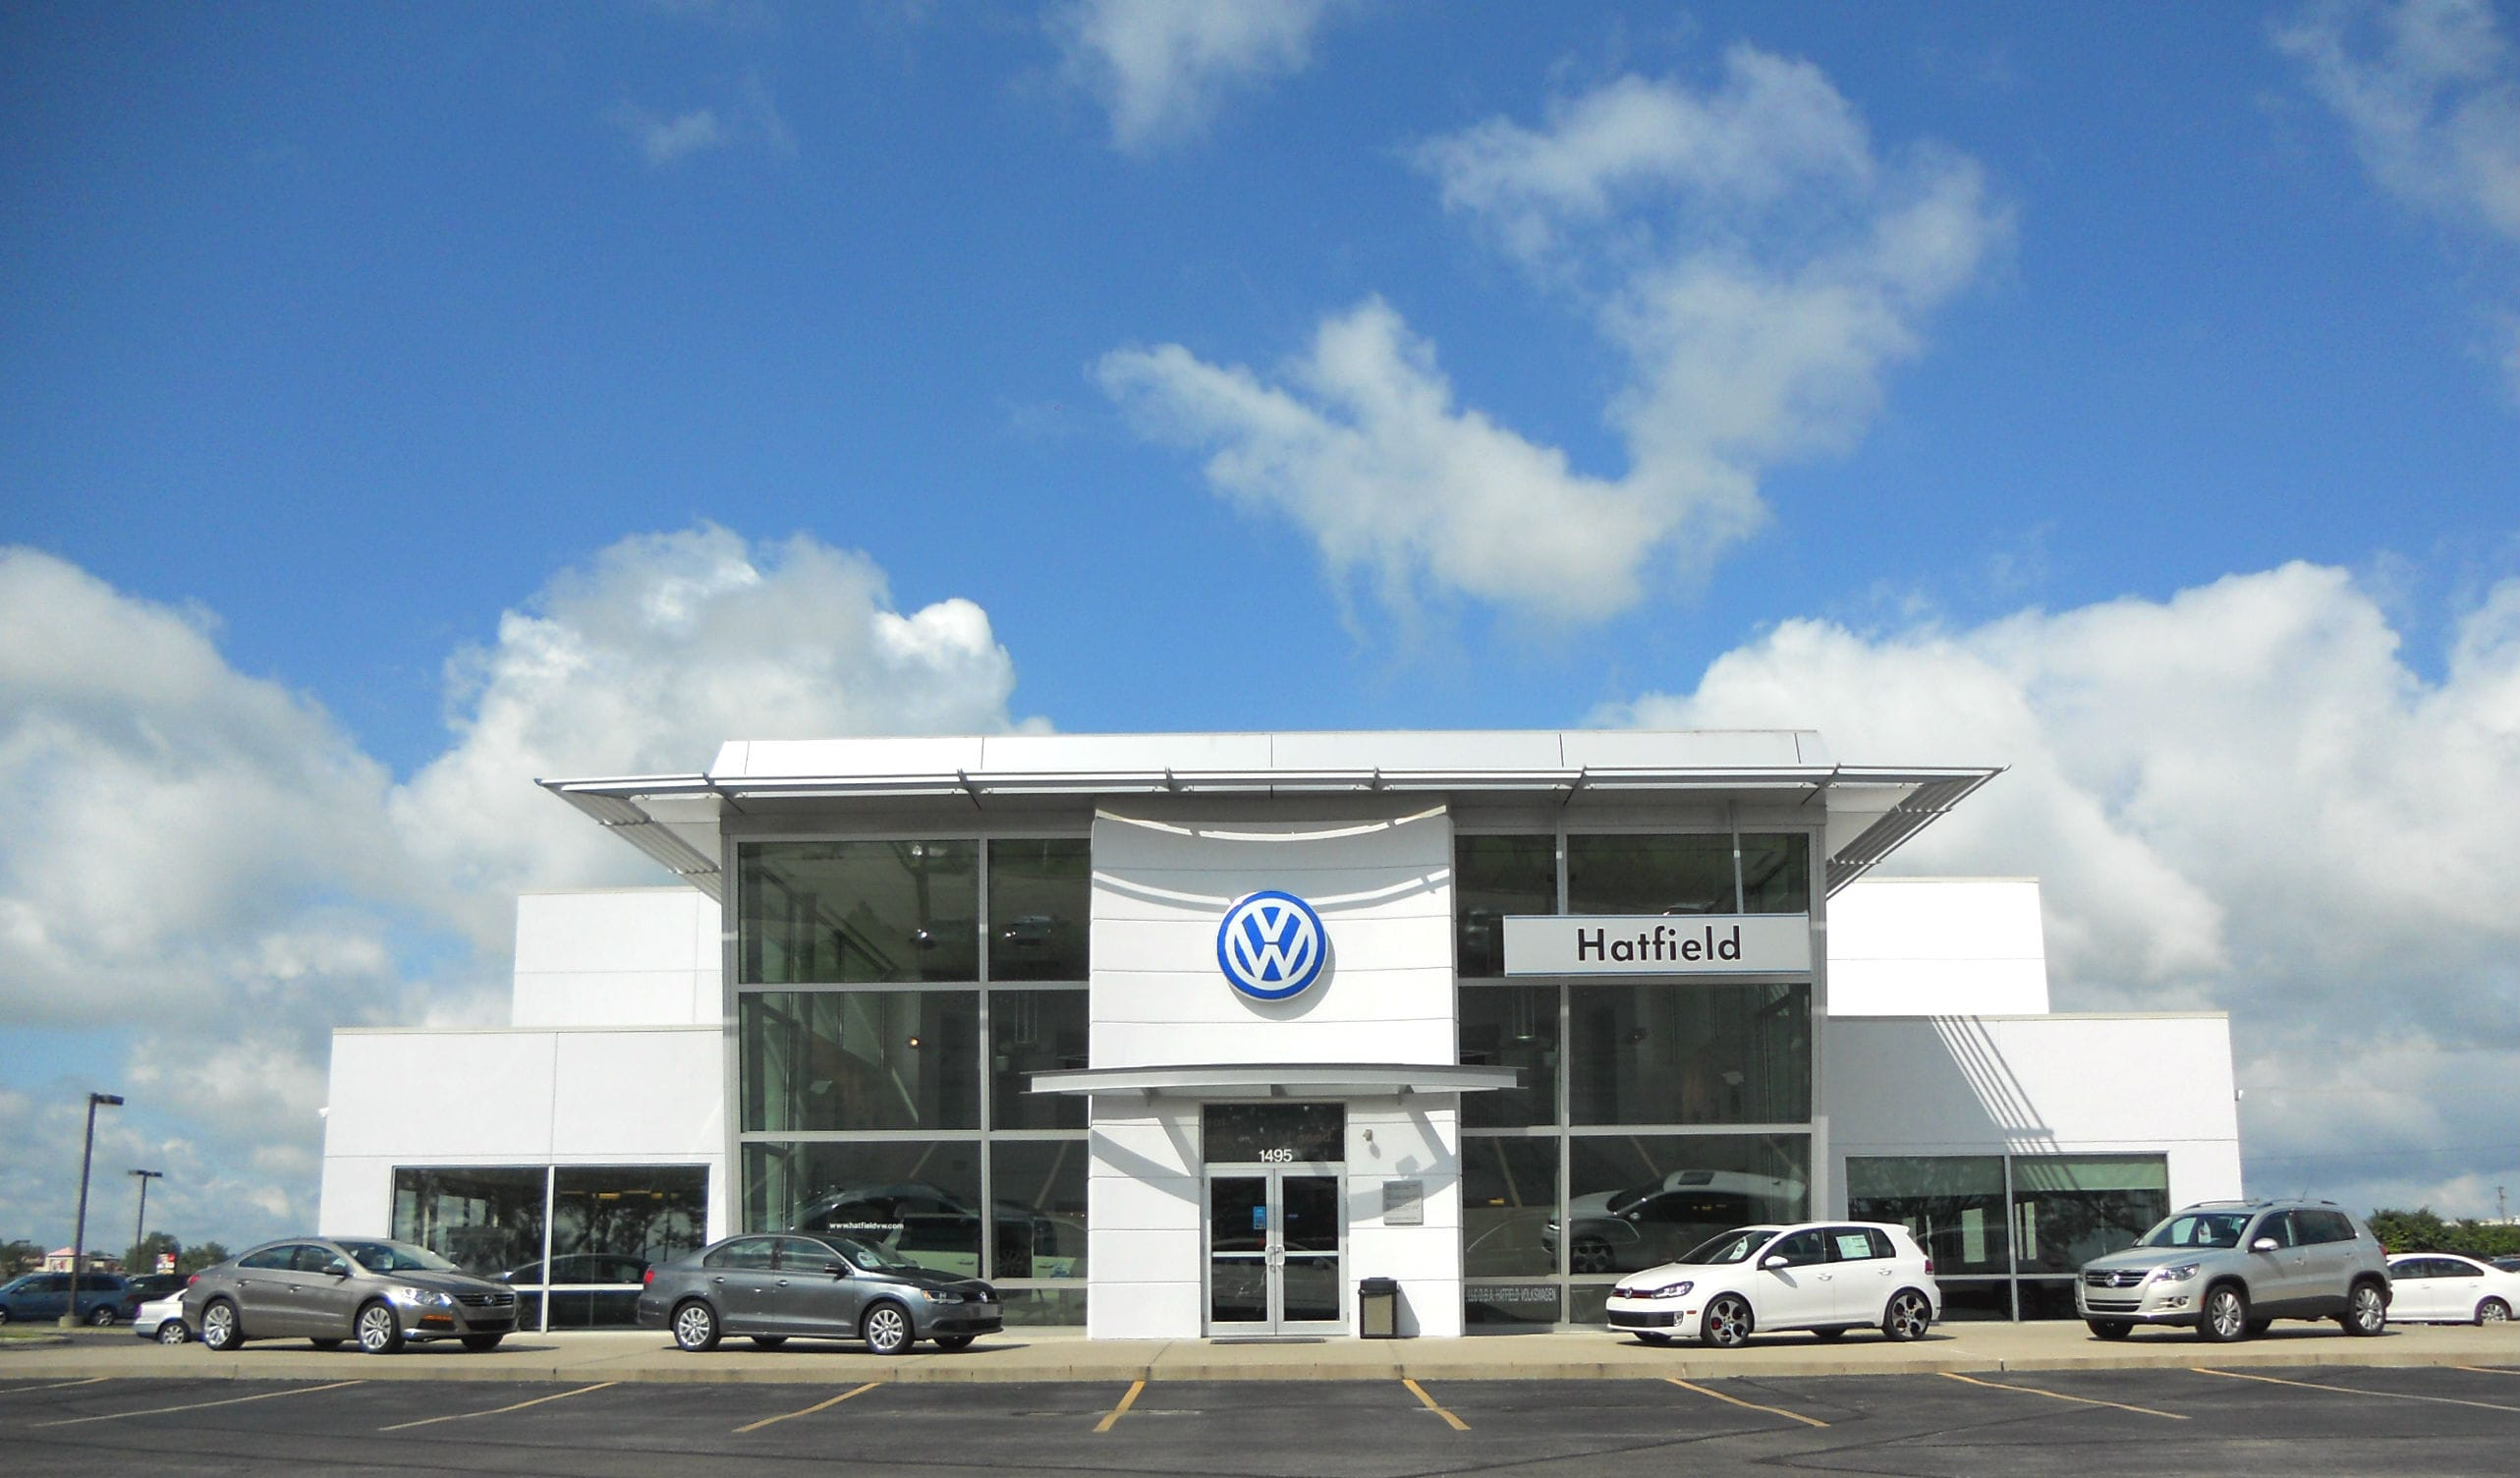 hatfield volkswagen volkswagen dealer  columbus